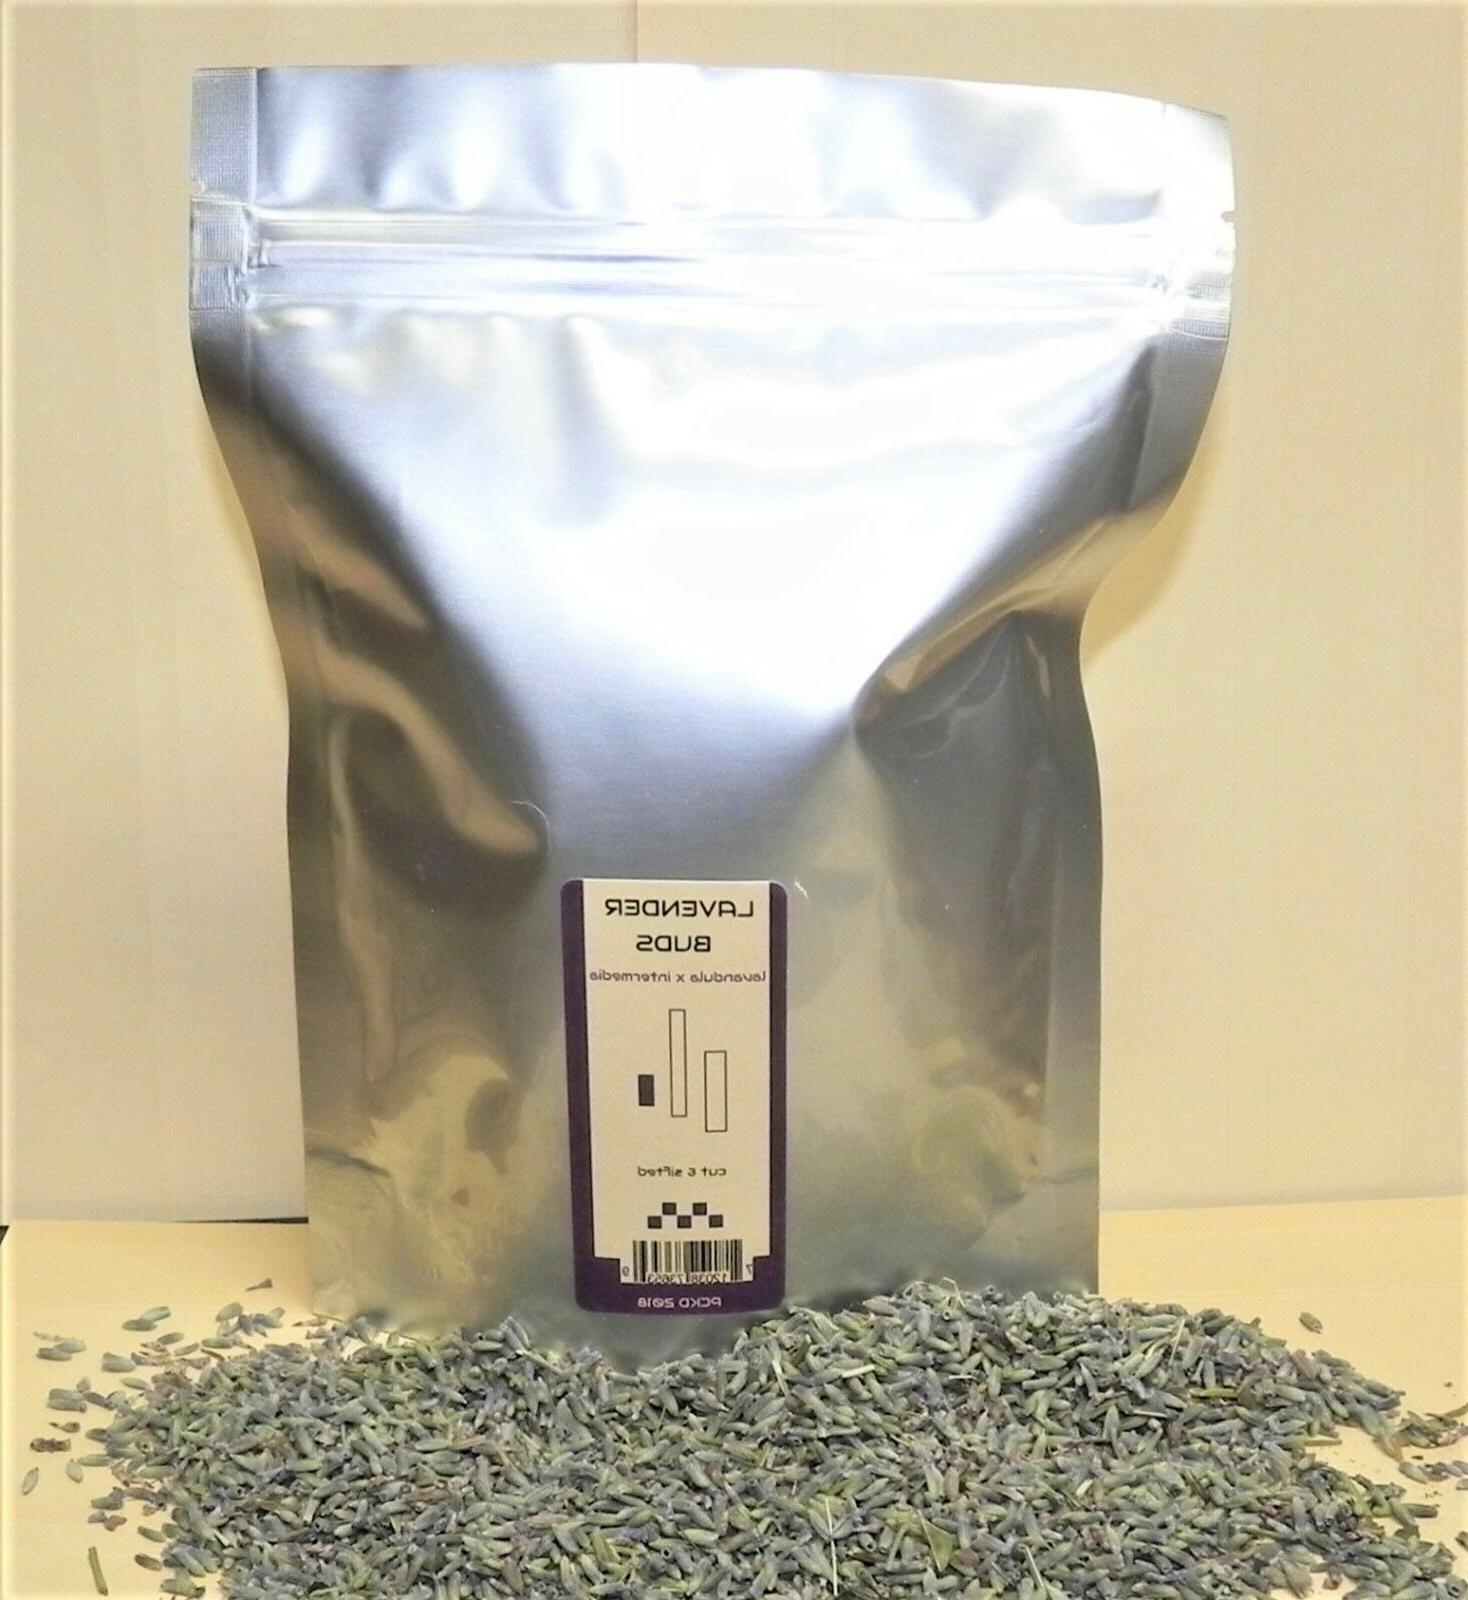 Lavender Flowers Buds 1 2 4 5 6 8 10 12 14 16 oz ounce to 5